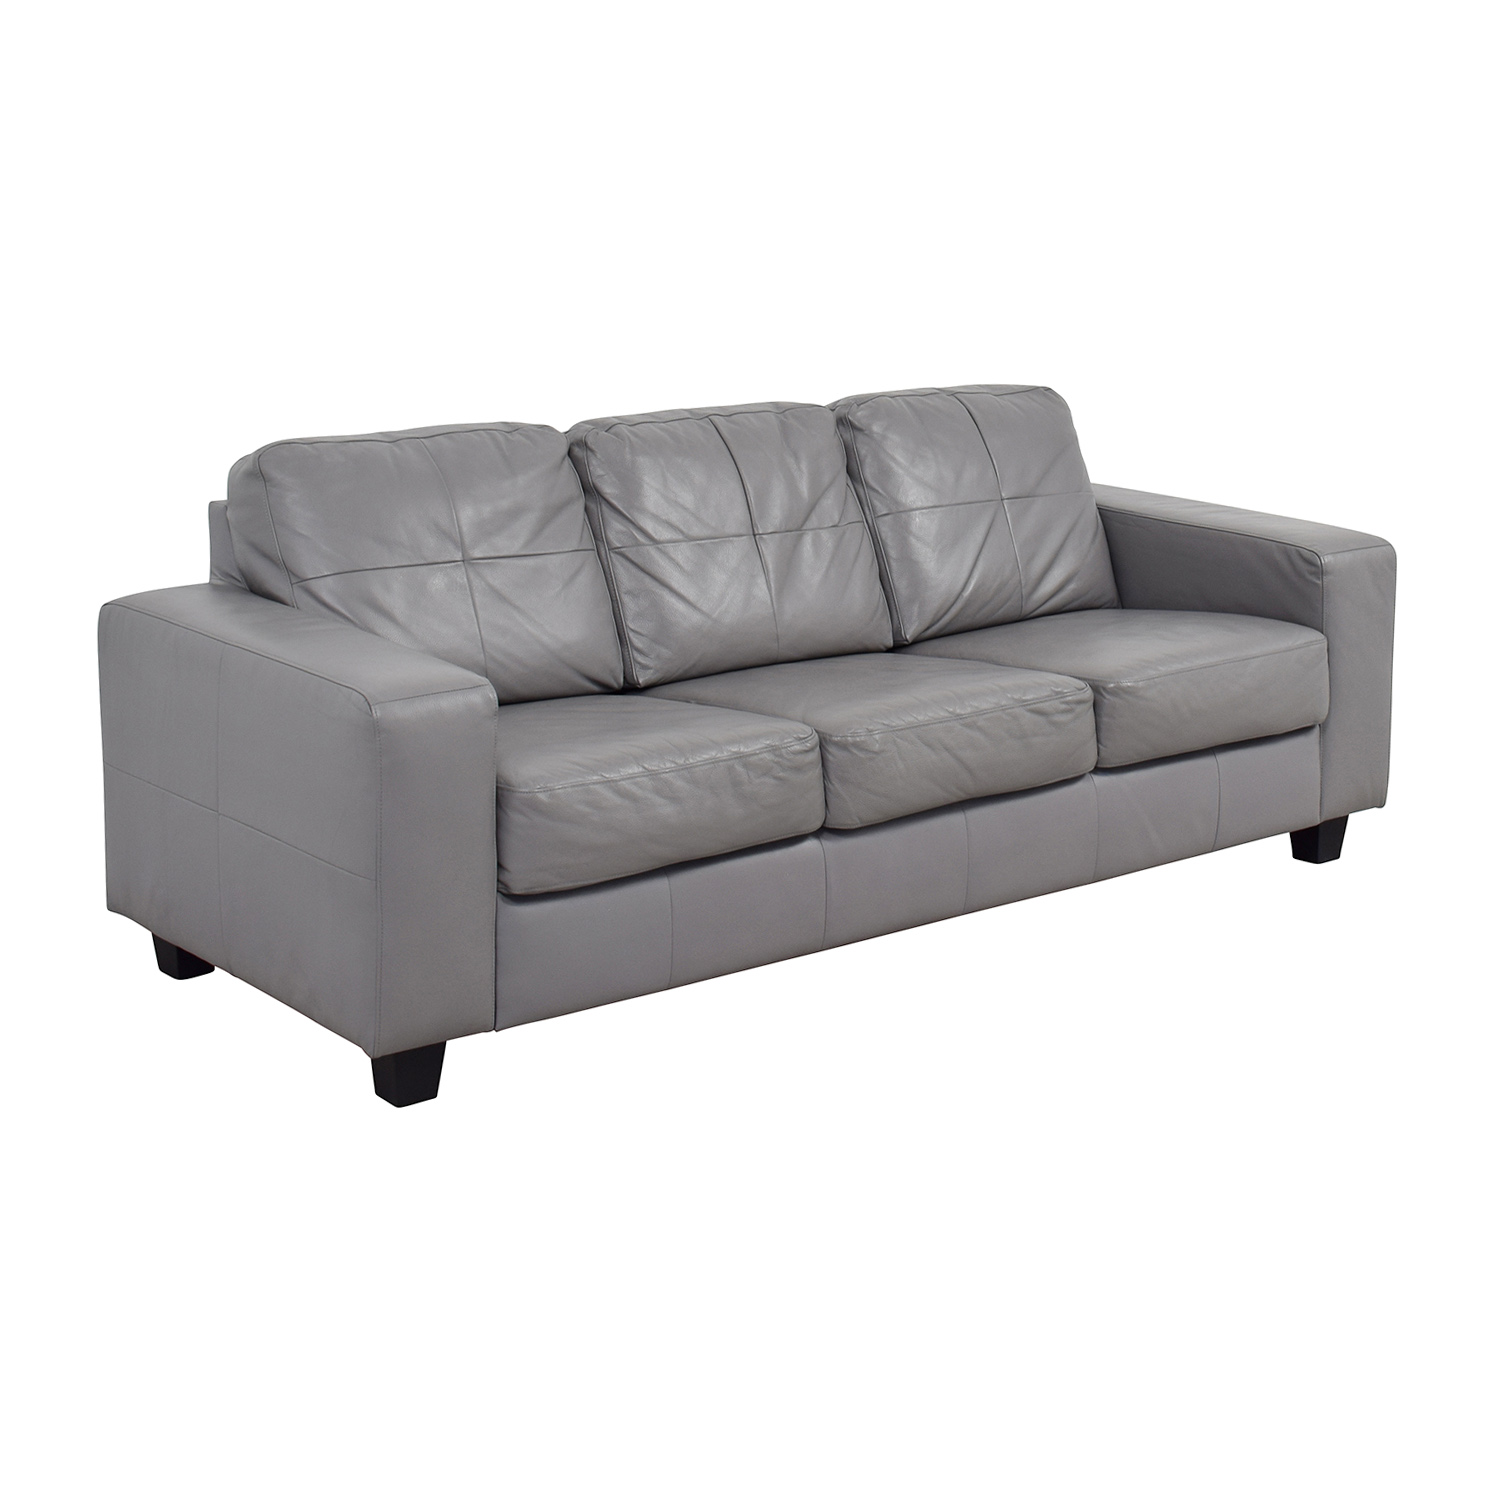 41 off ikea ikea skogaby sofa in light grey sofas for Ikea gray sofa